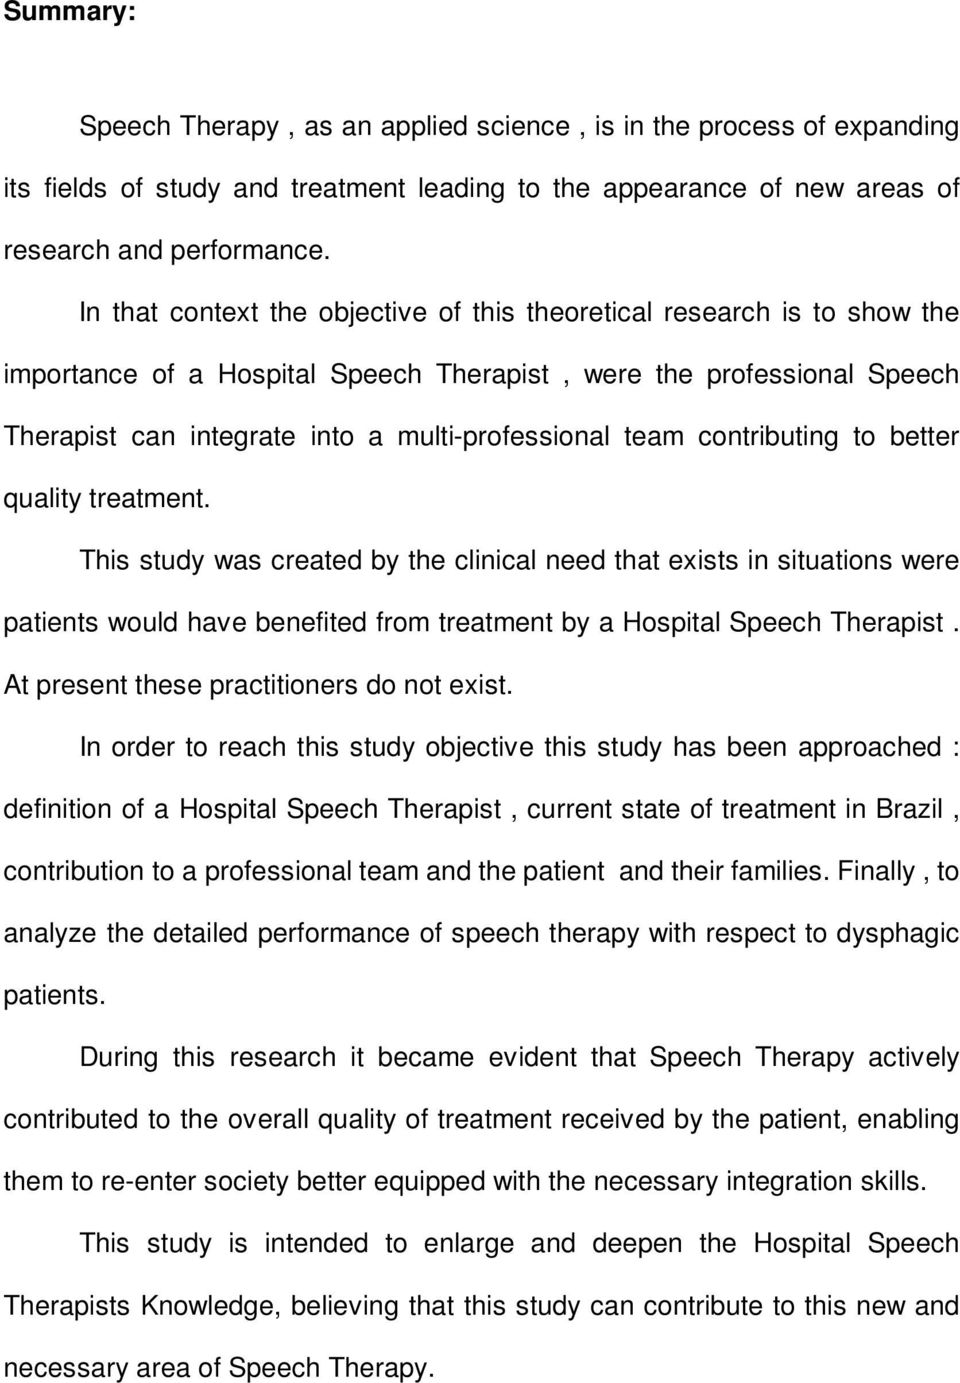 team contributing to better quality treatment. This study was created by the clinical need that exists in situations were patients would have benefited from treatment by a Hospital Speech Therapist.